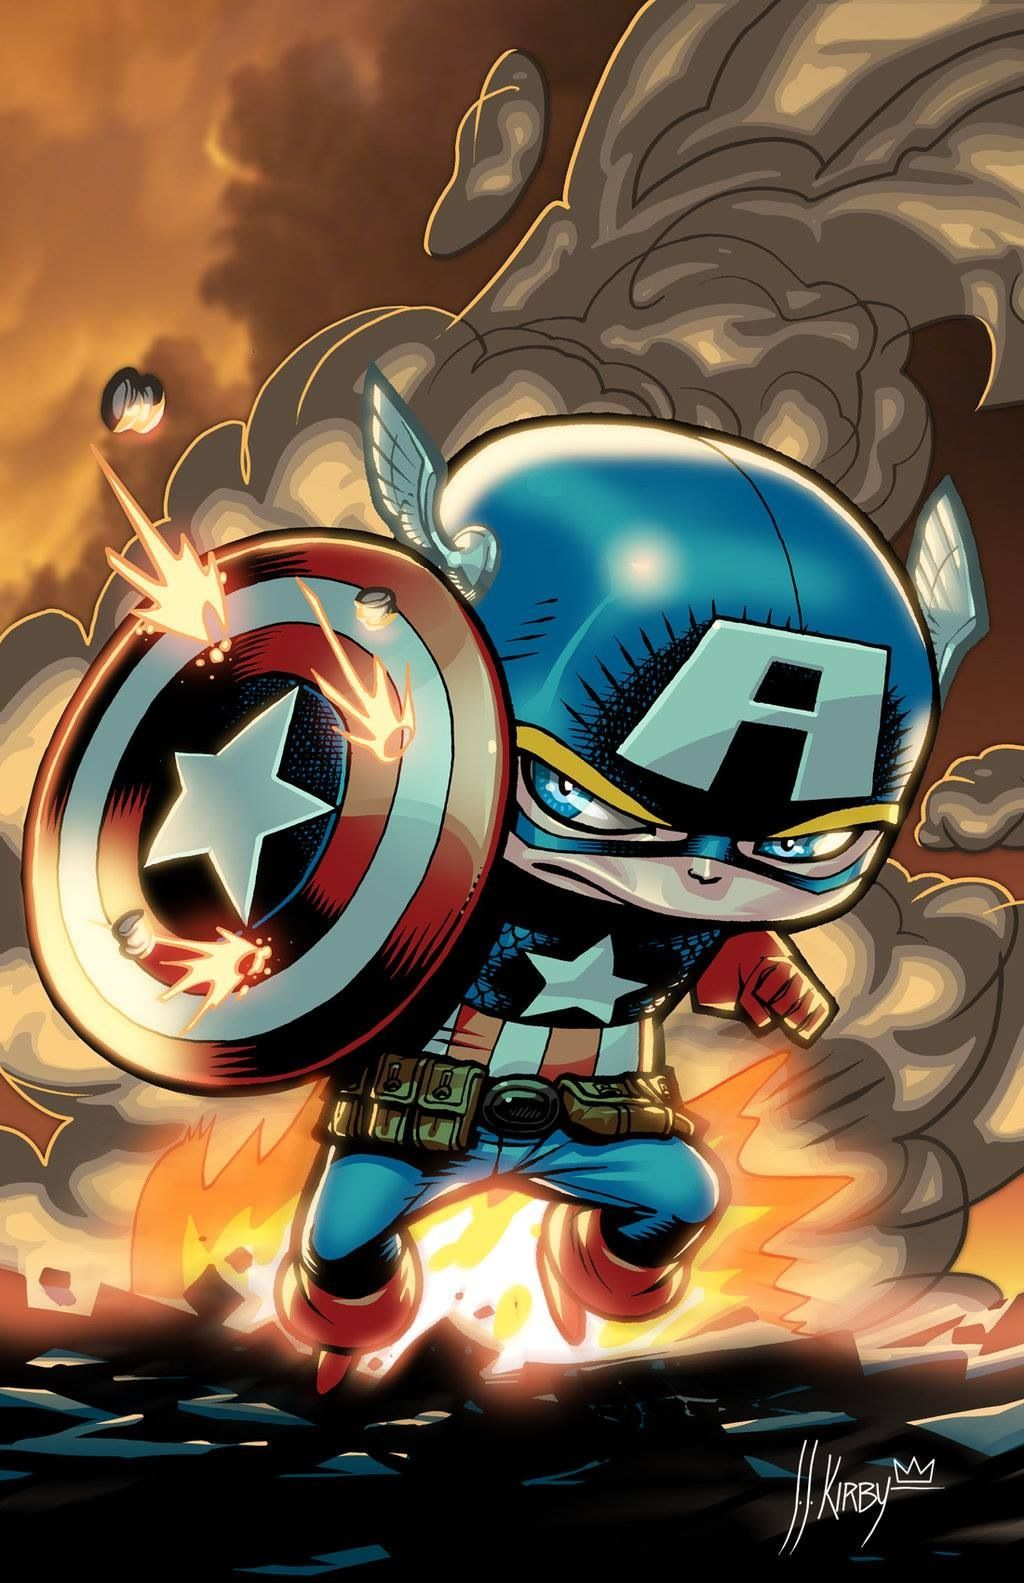 Beautiful Wallpaper Captain America Baby - 2bae4186bc2b56d072c83a08513ed8d1  Collection_129543.jpg